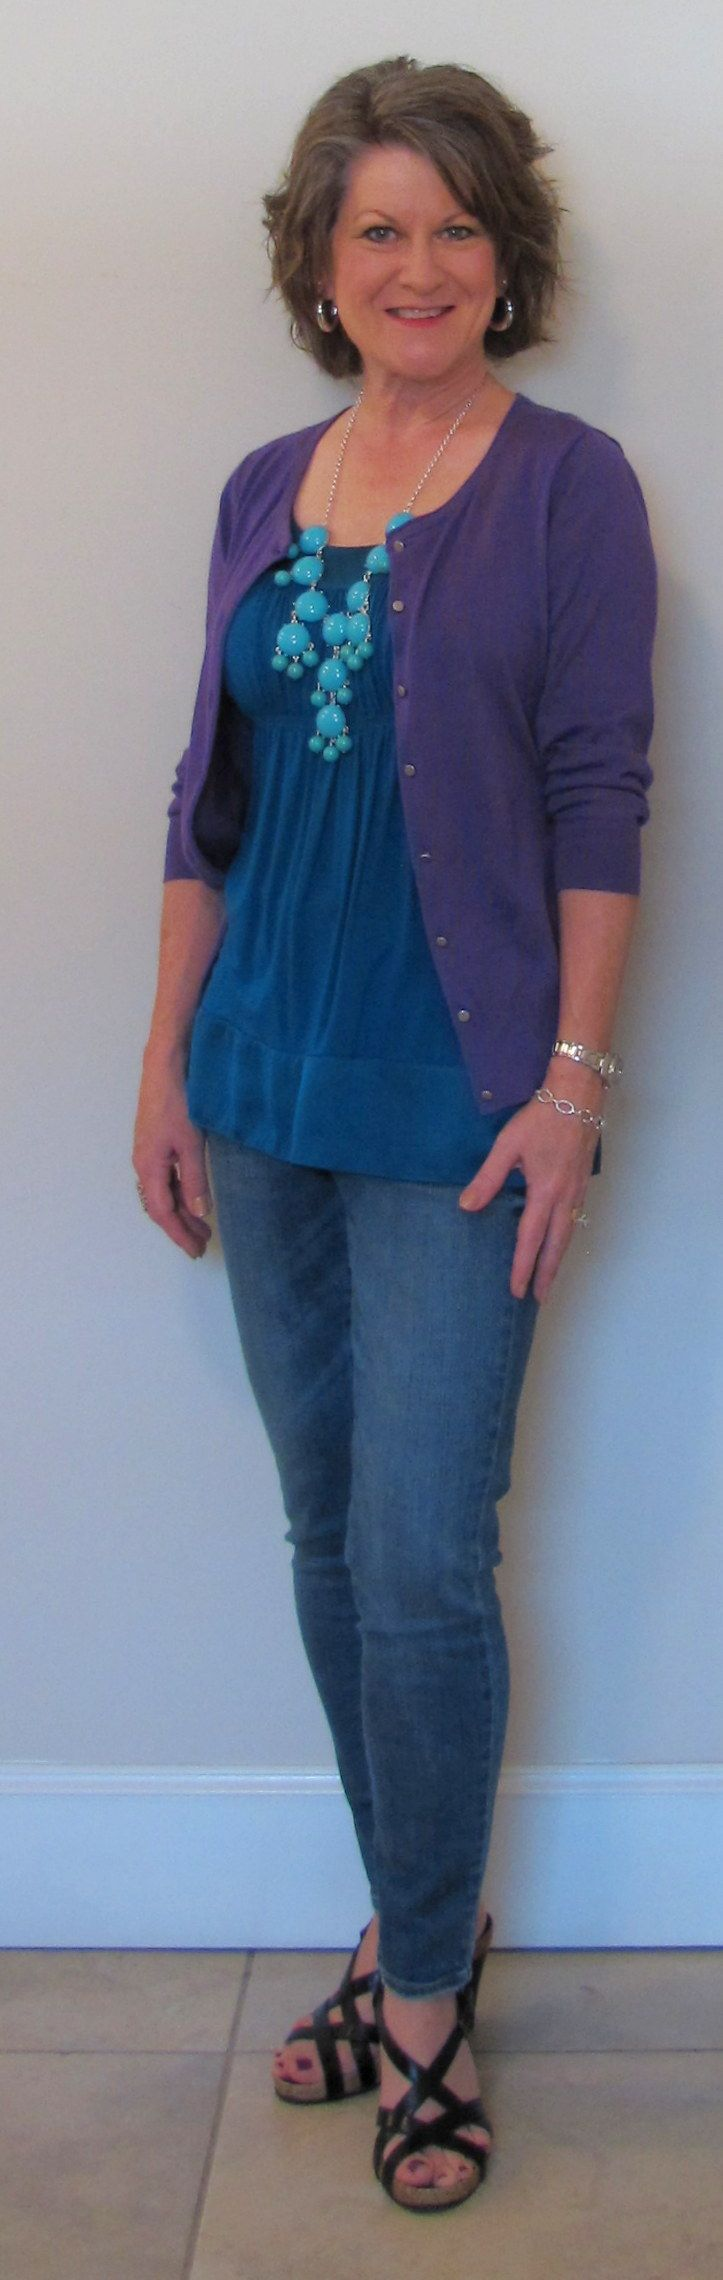 Clothing Styles For Women